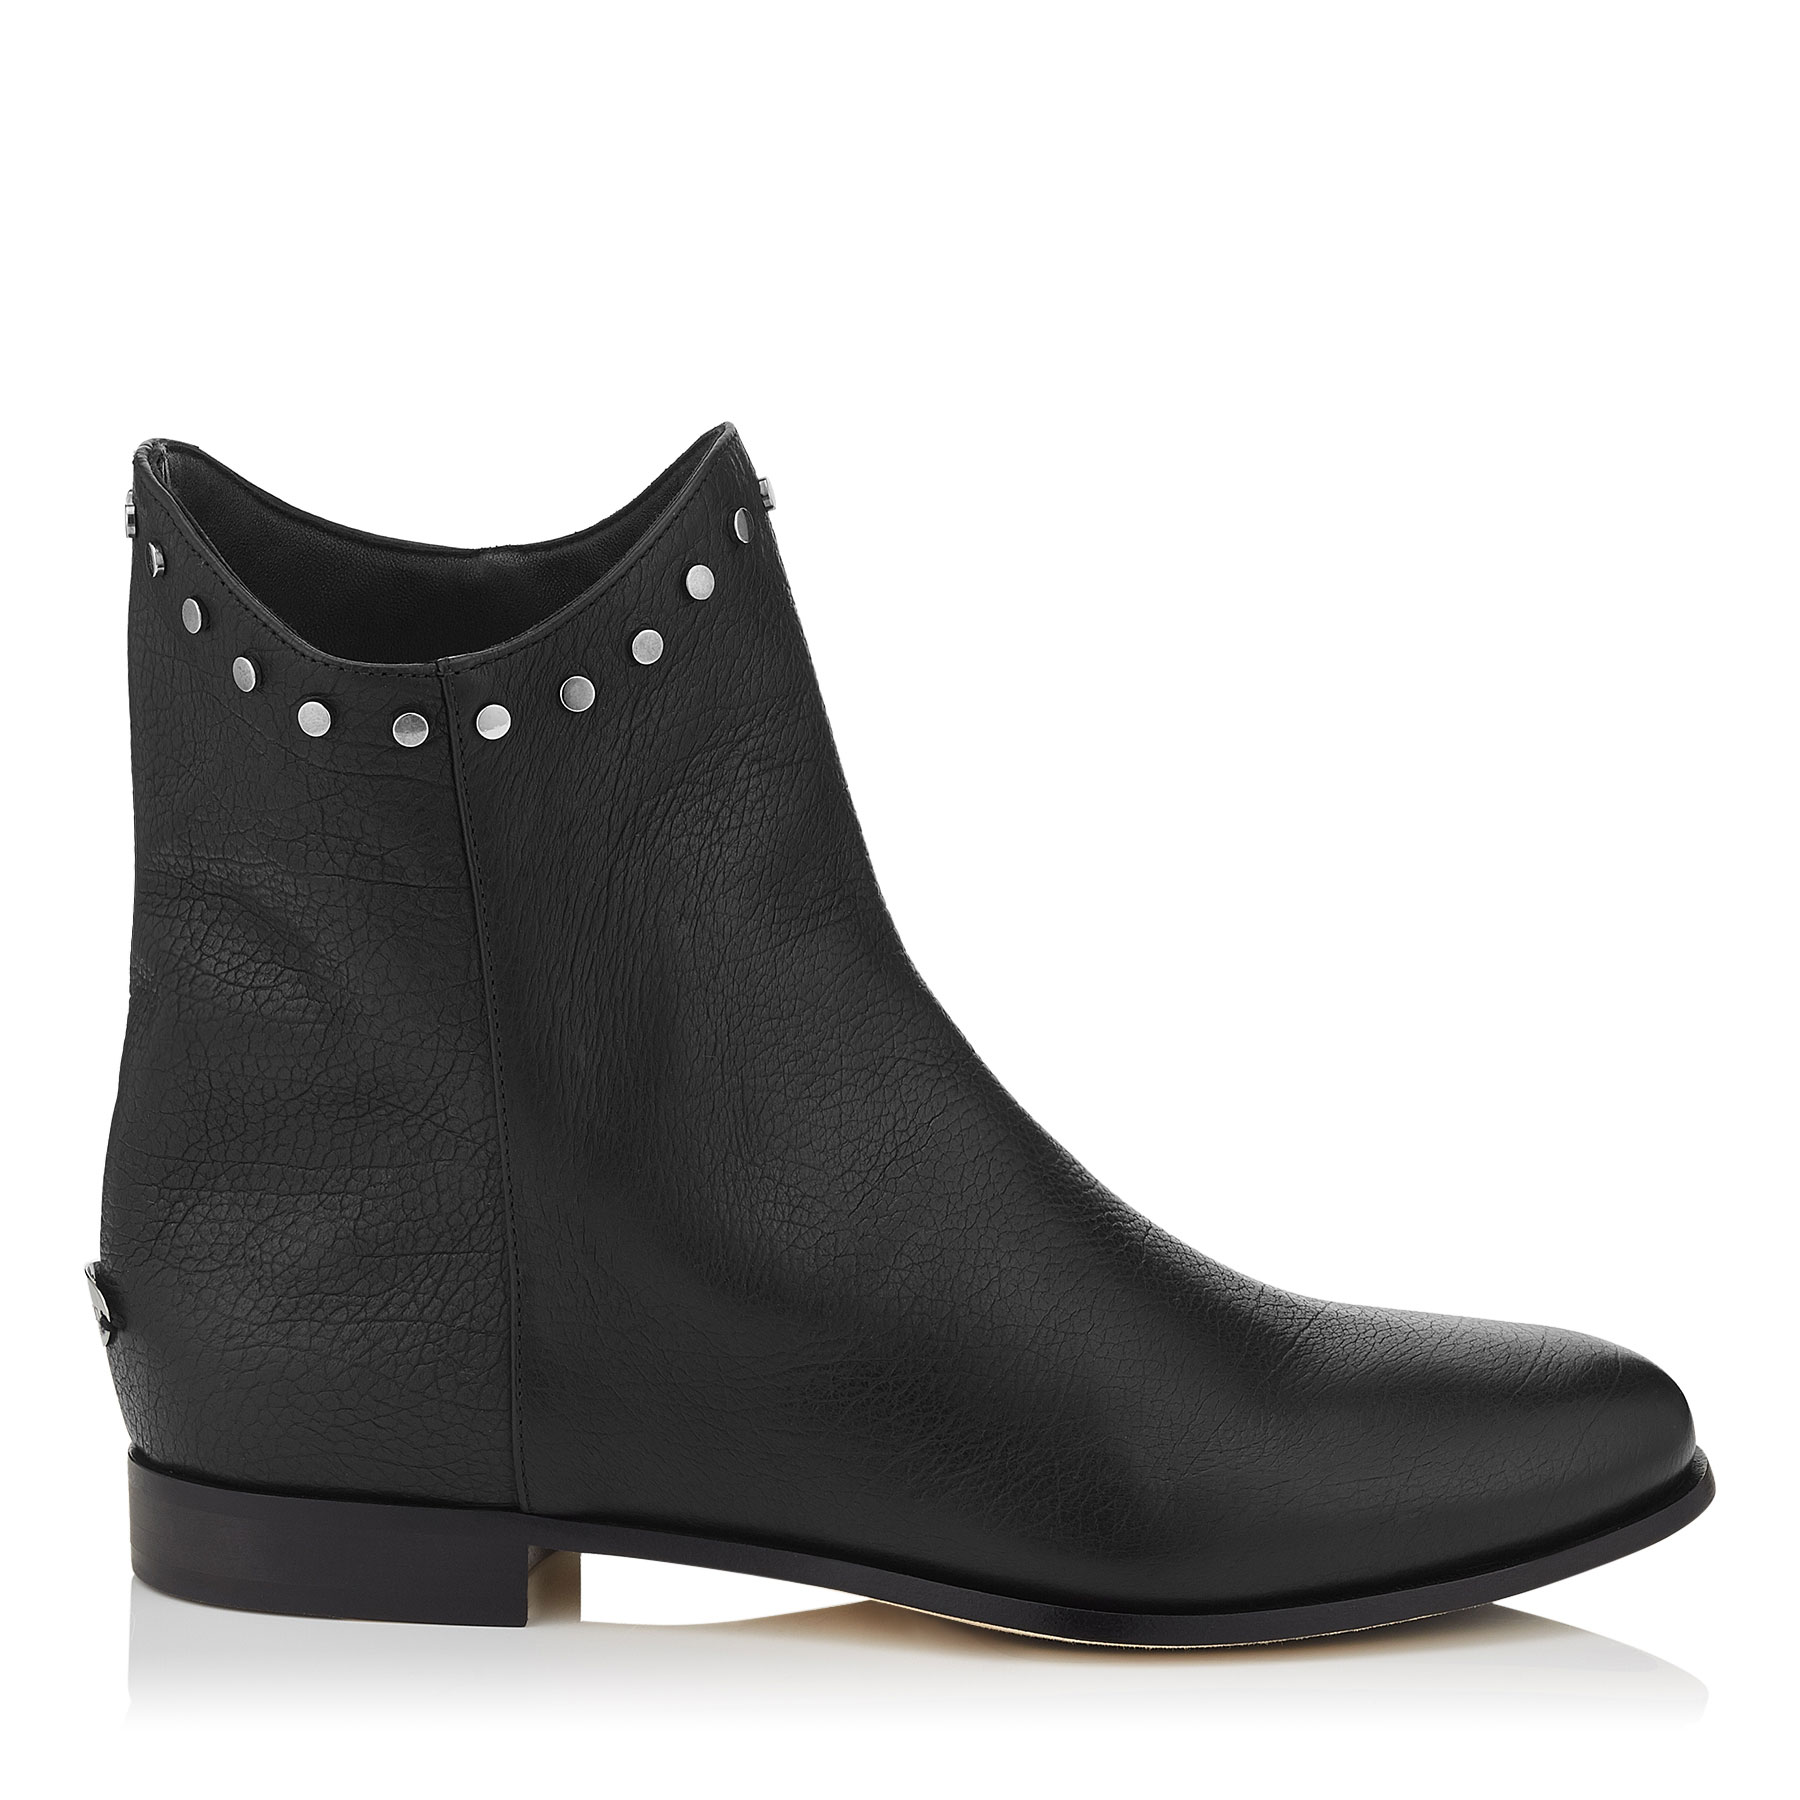 MARCO FLAT Black leather Ankle Boots by Jimmy Choo